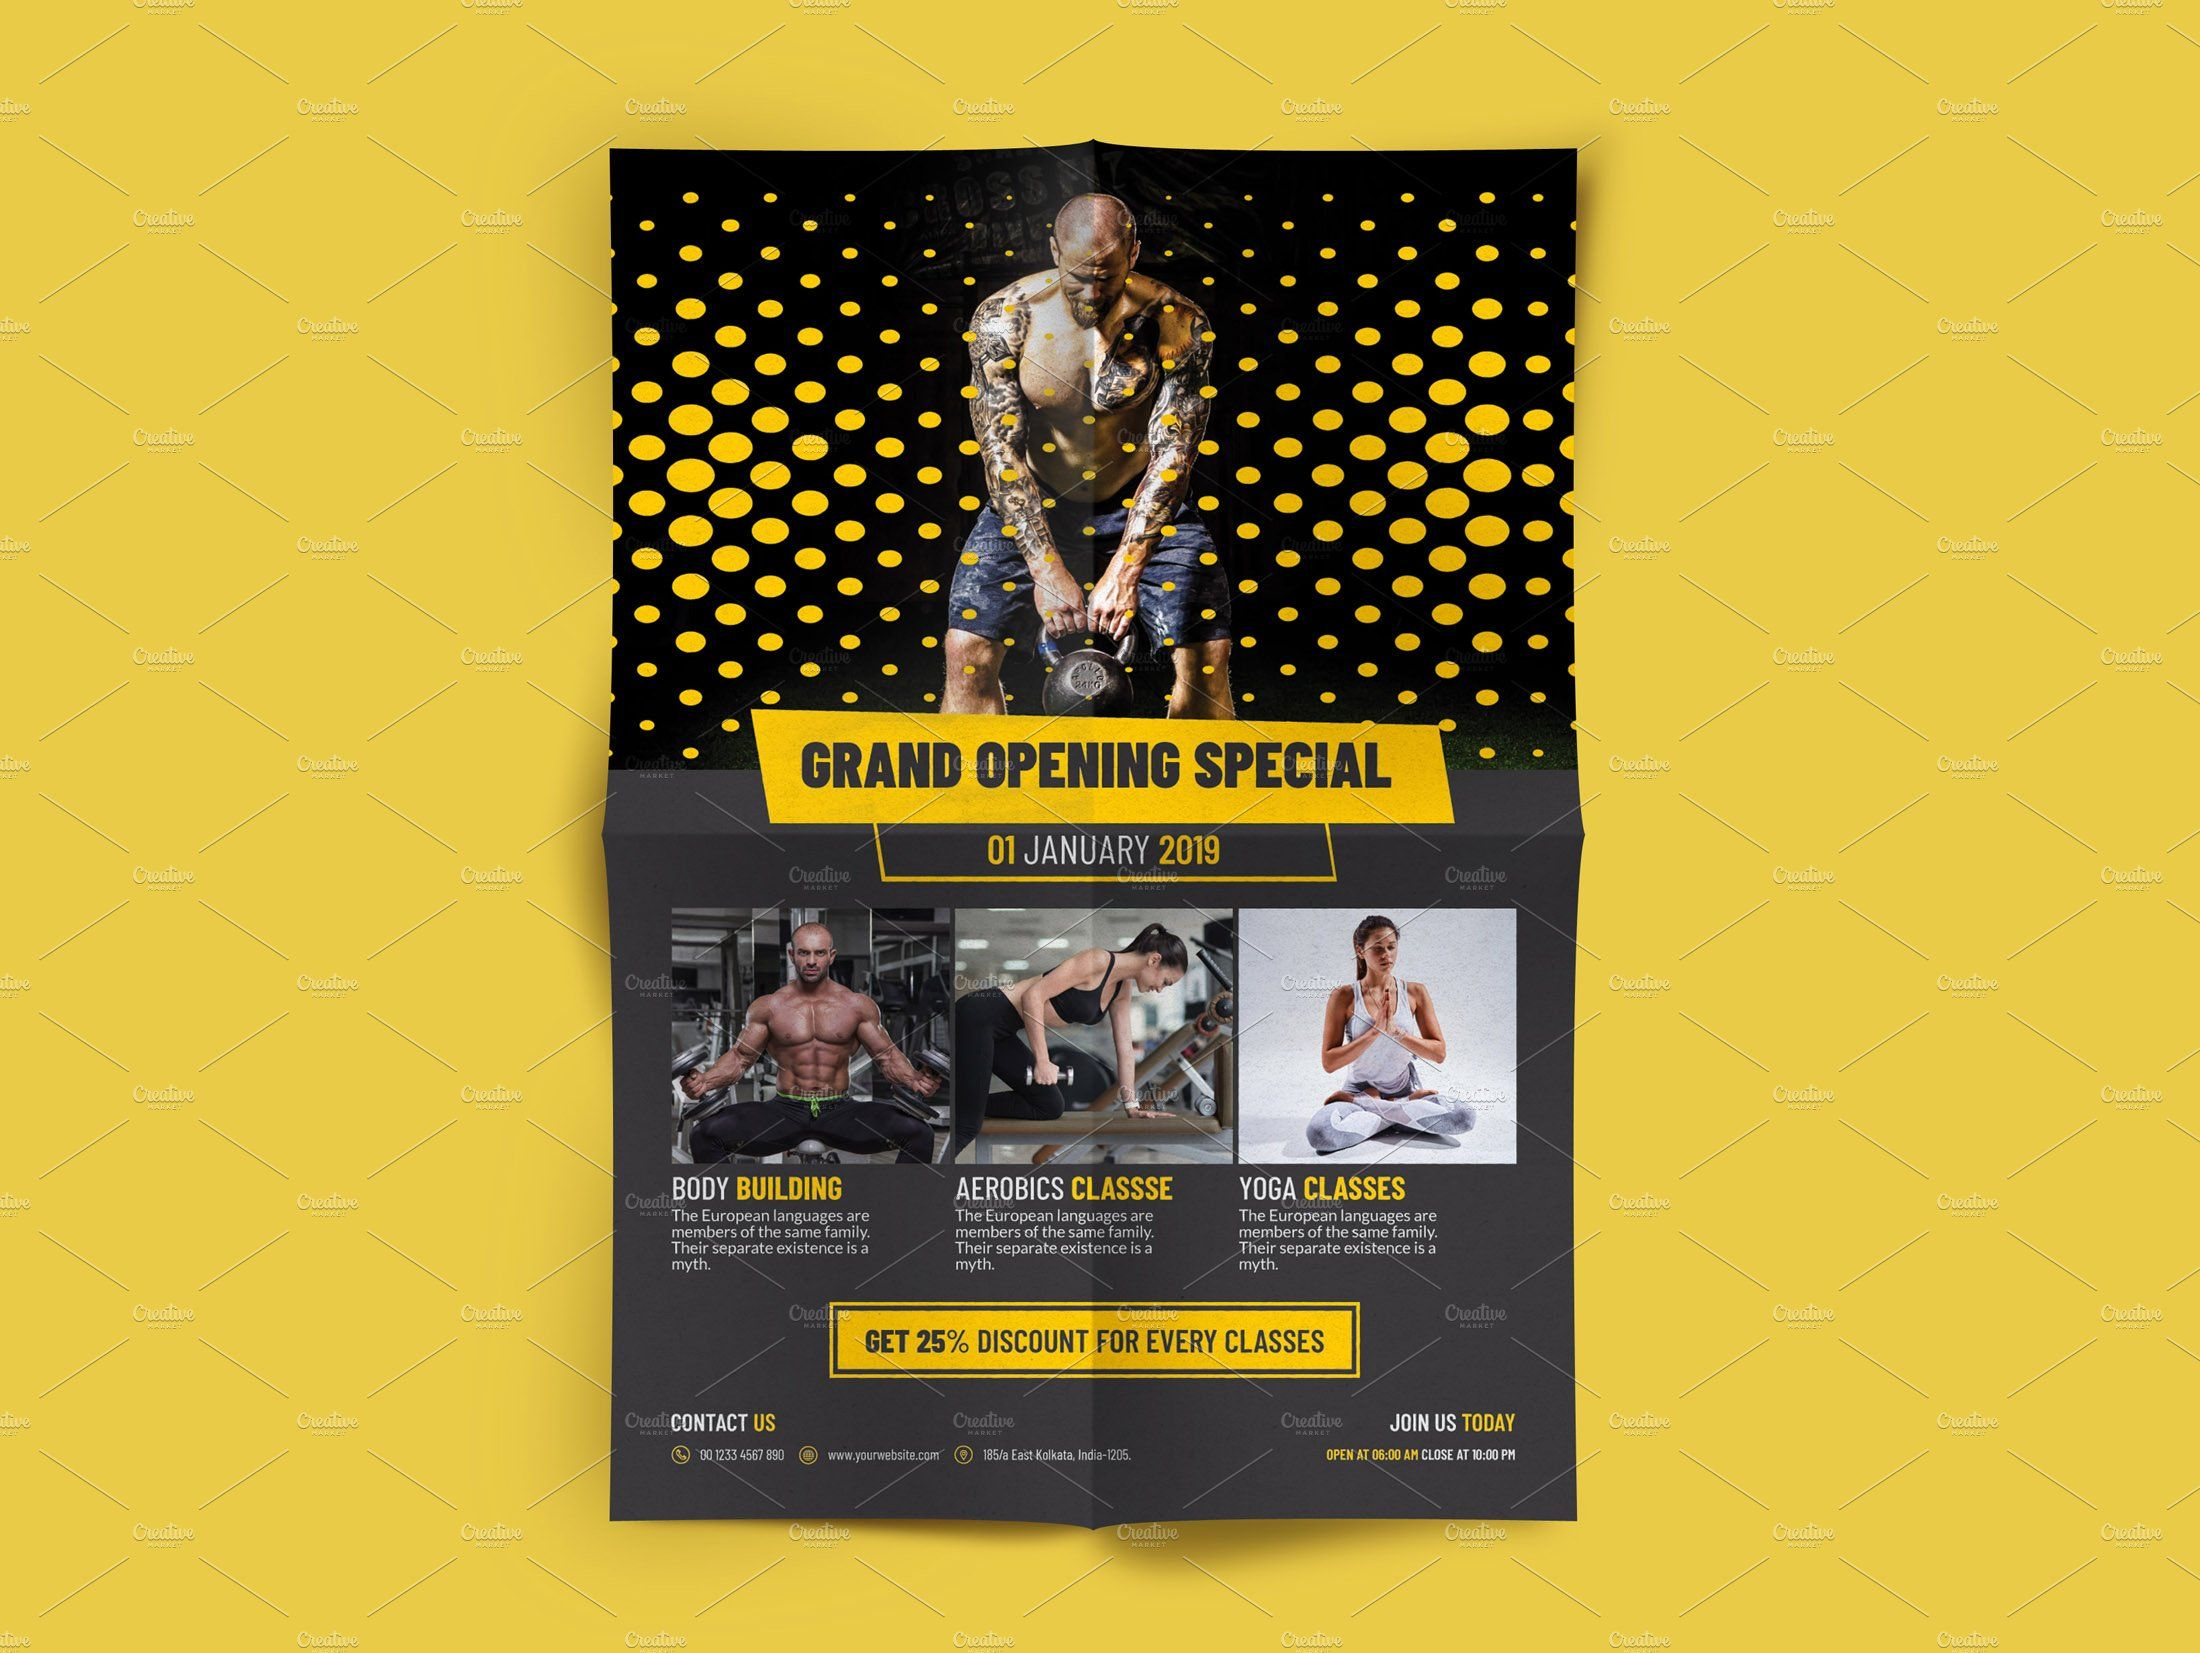 Free Download Program Grand Opening Flyer Template